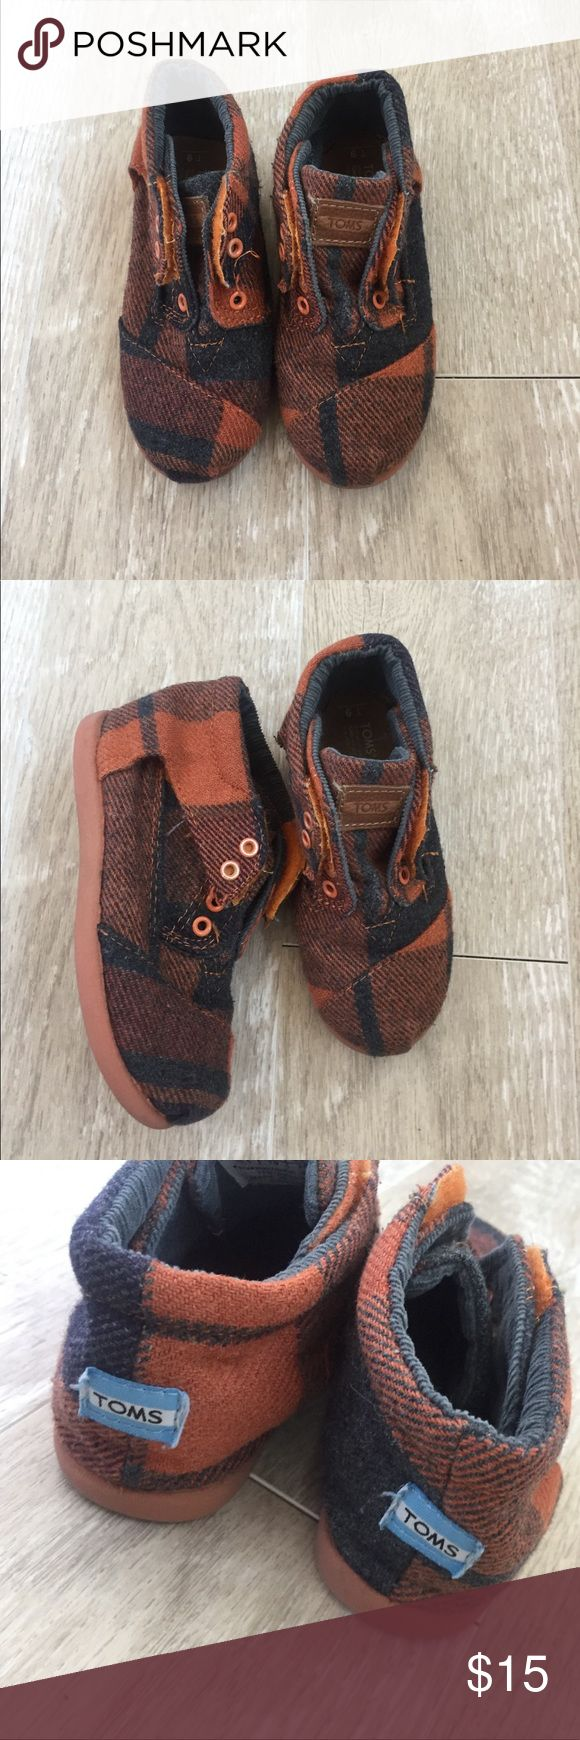 Kids Toms Ankle cut. Orange and grey. Worn but good condition with no major flaws TOMS Shoes